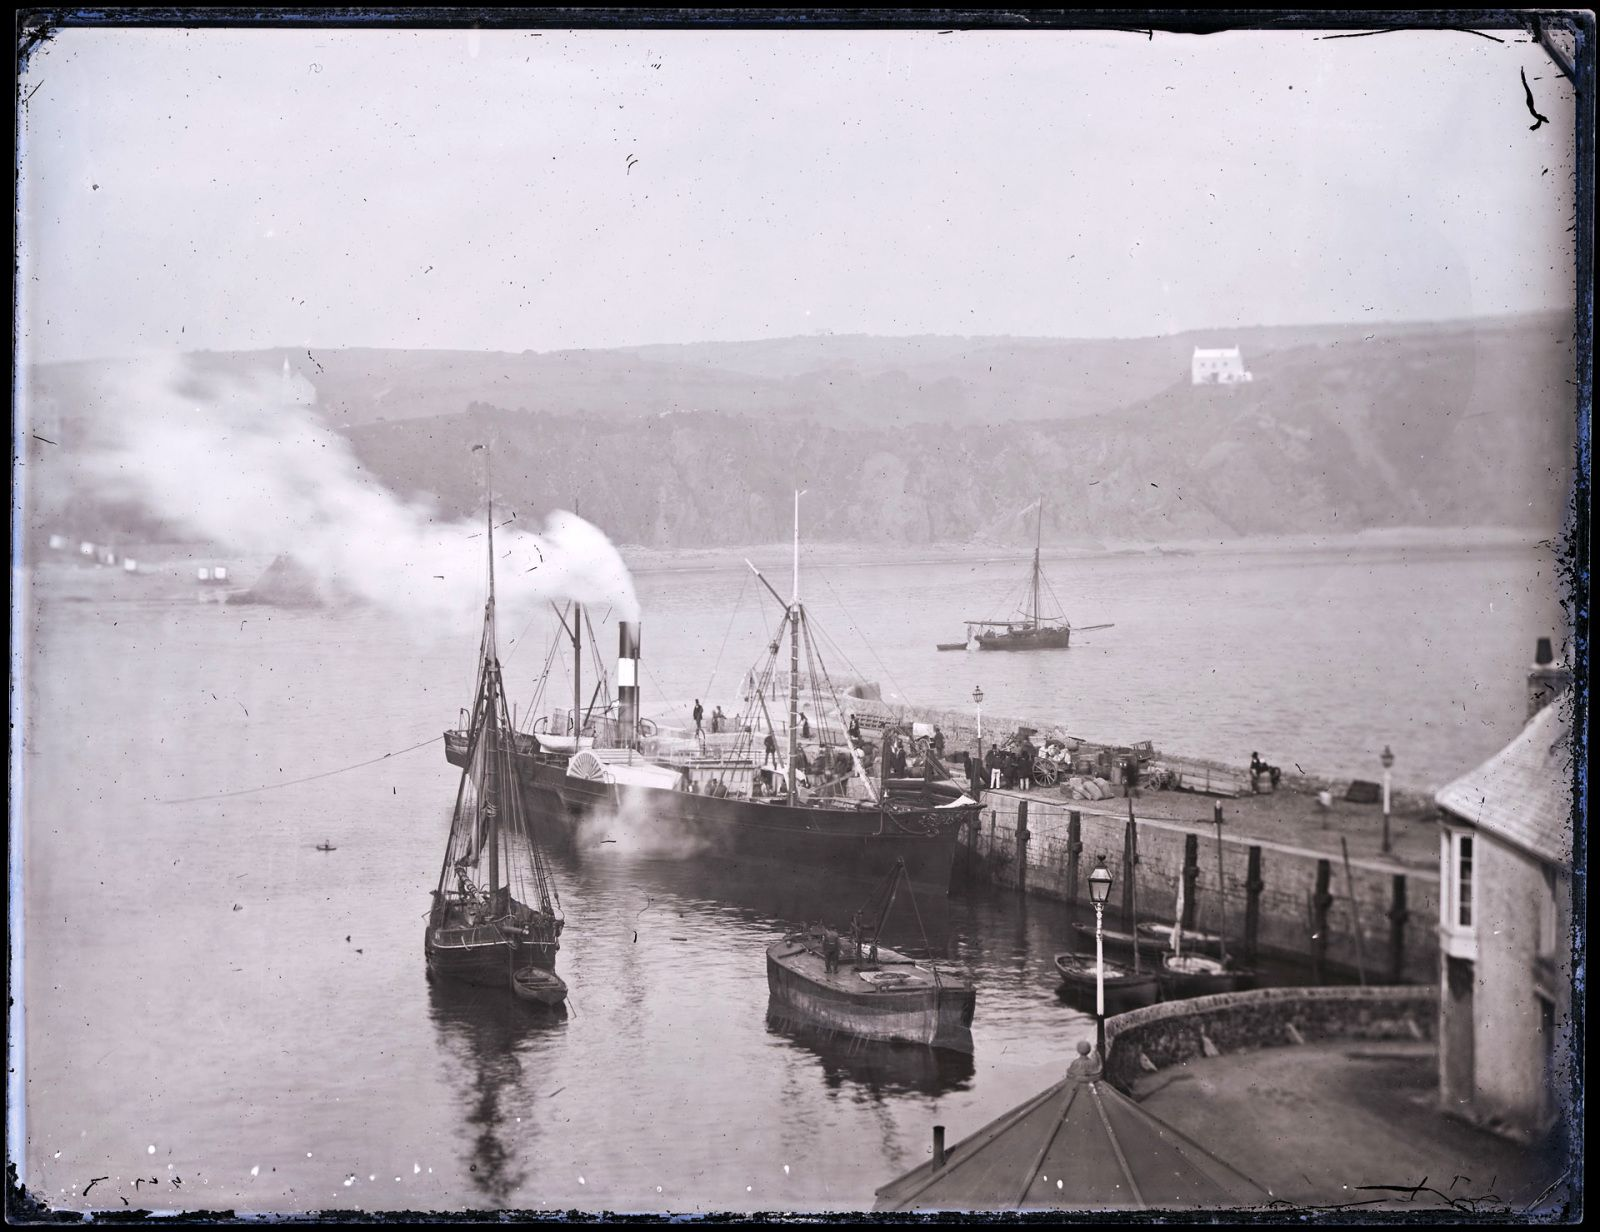 This Collodion glass negative is from the 'Motion' series showing the steamer JUNO at Tenby, c.1855